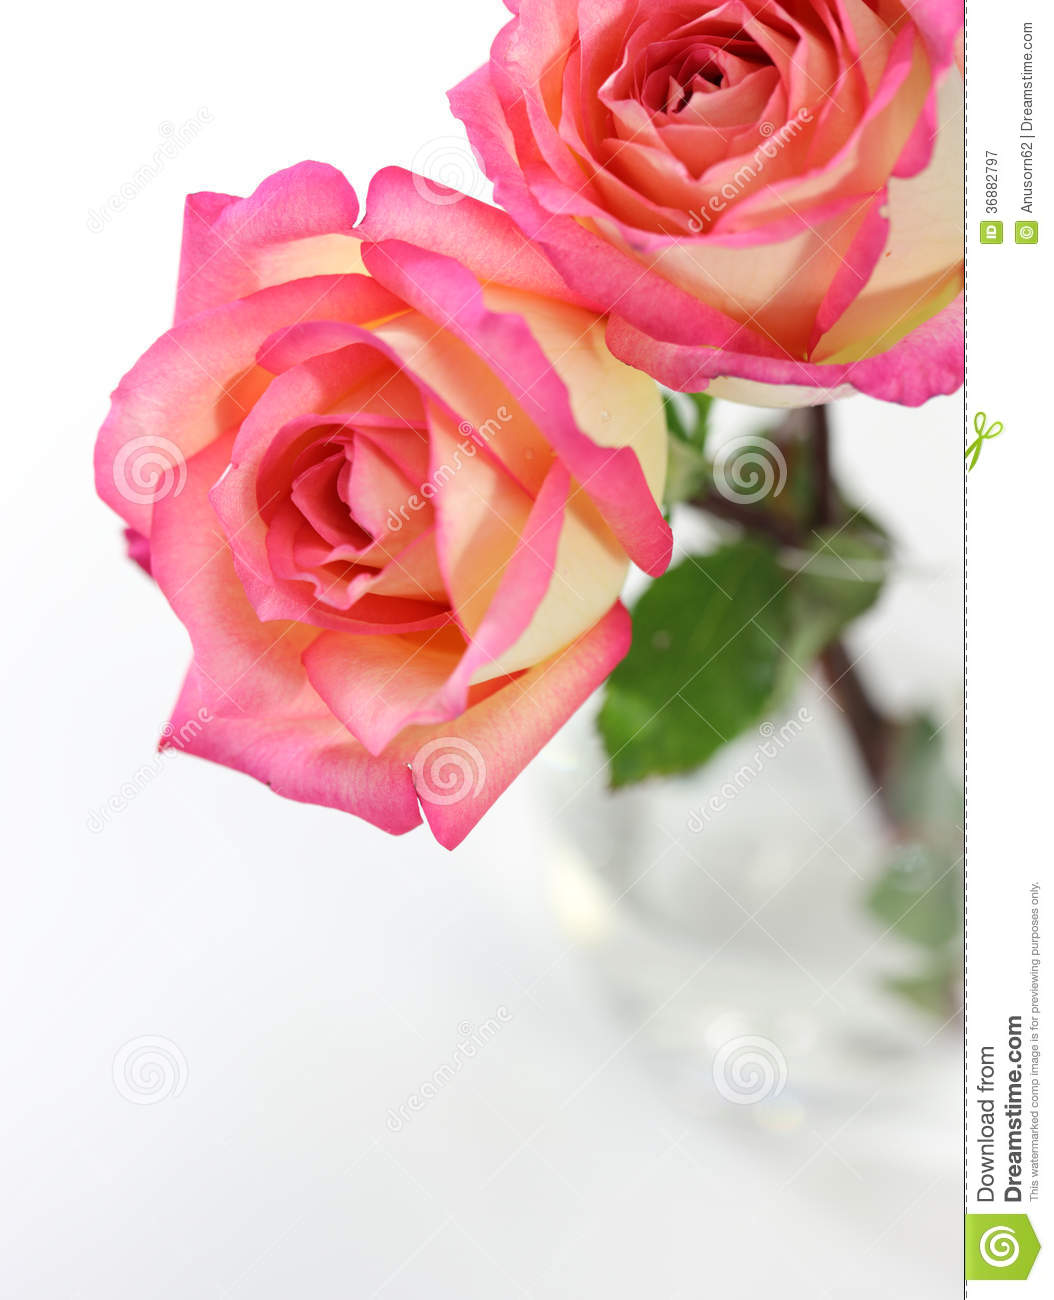 Download Rosa di rosa immagine stock. Immagine di flora, closeup - 36882797